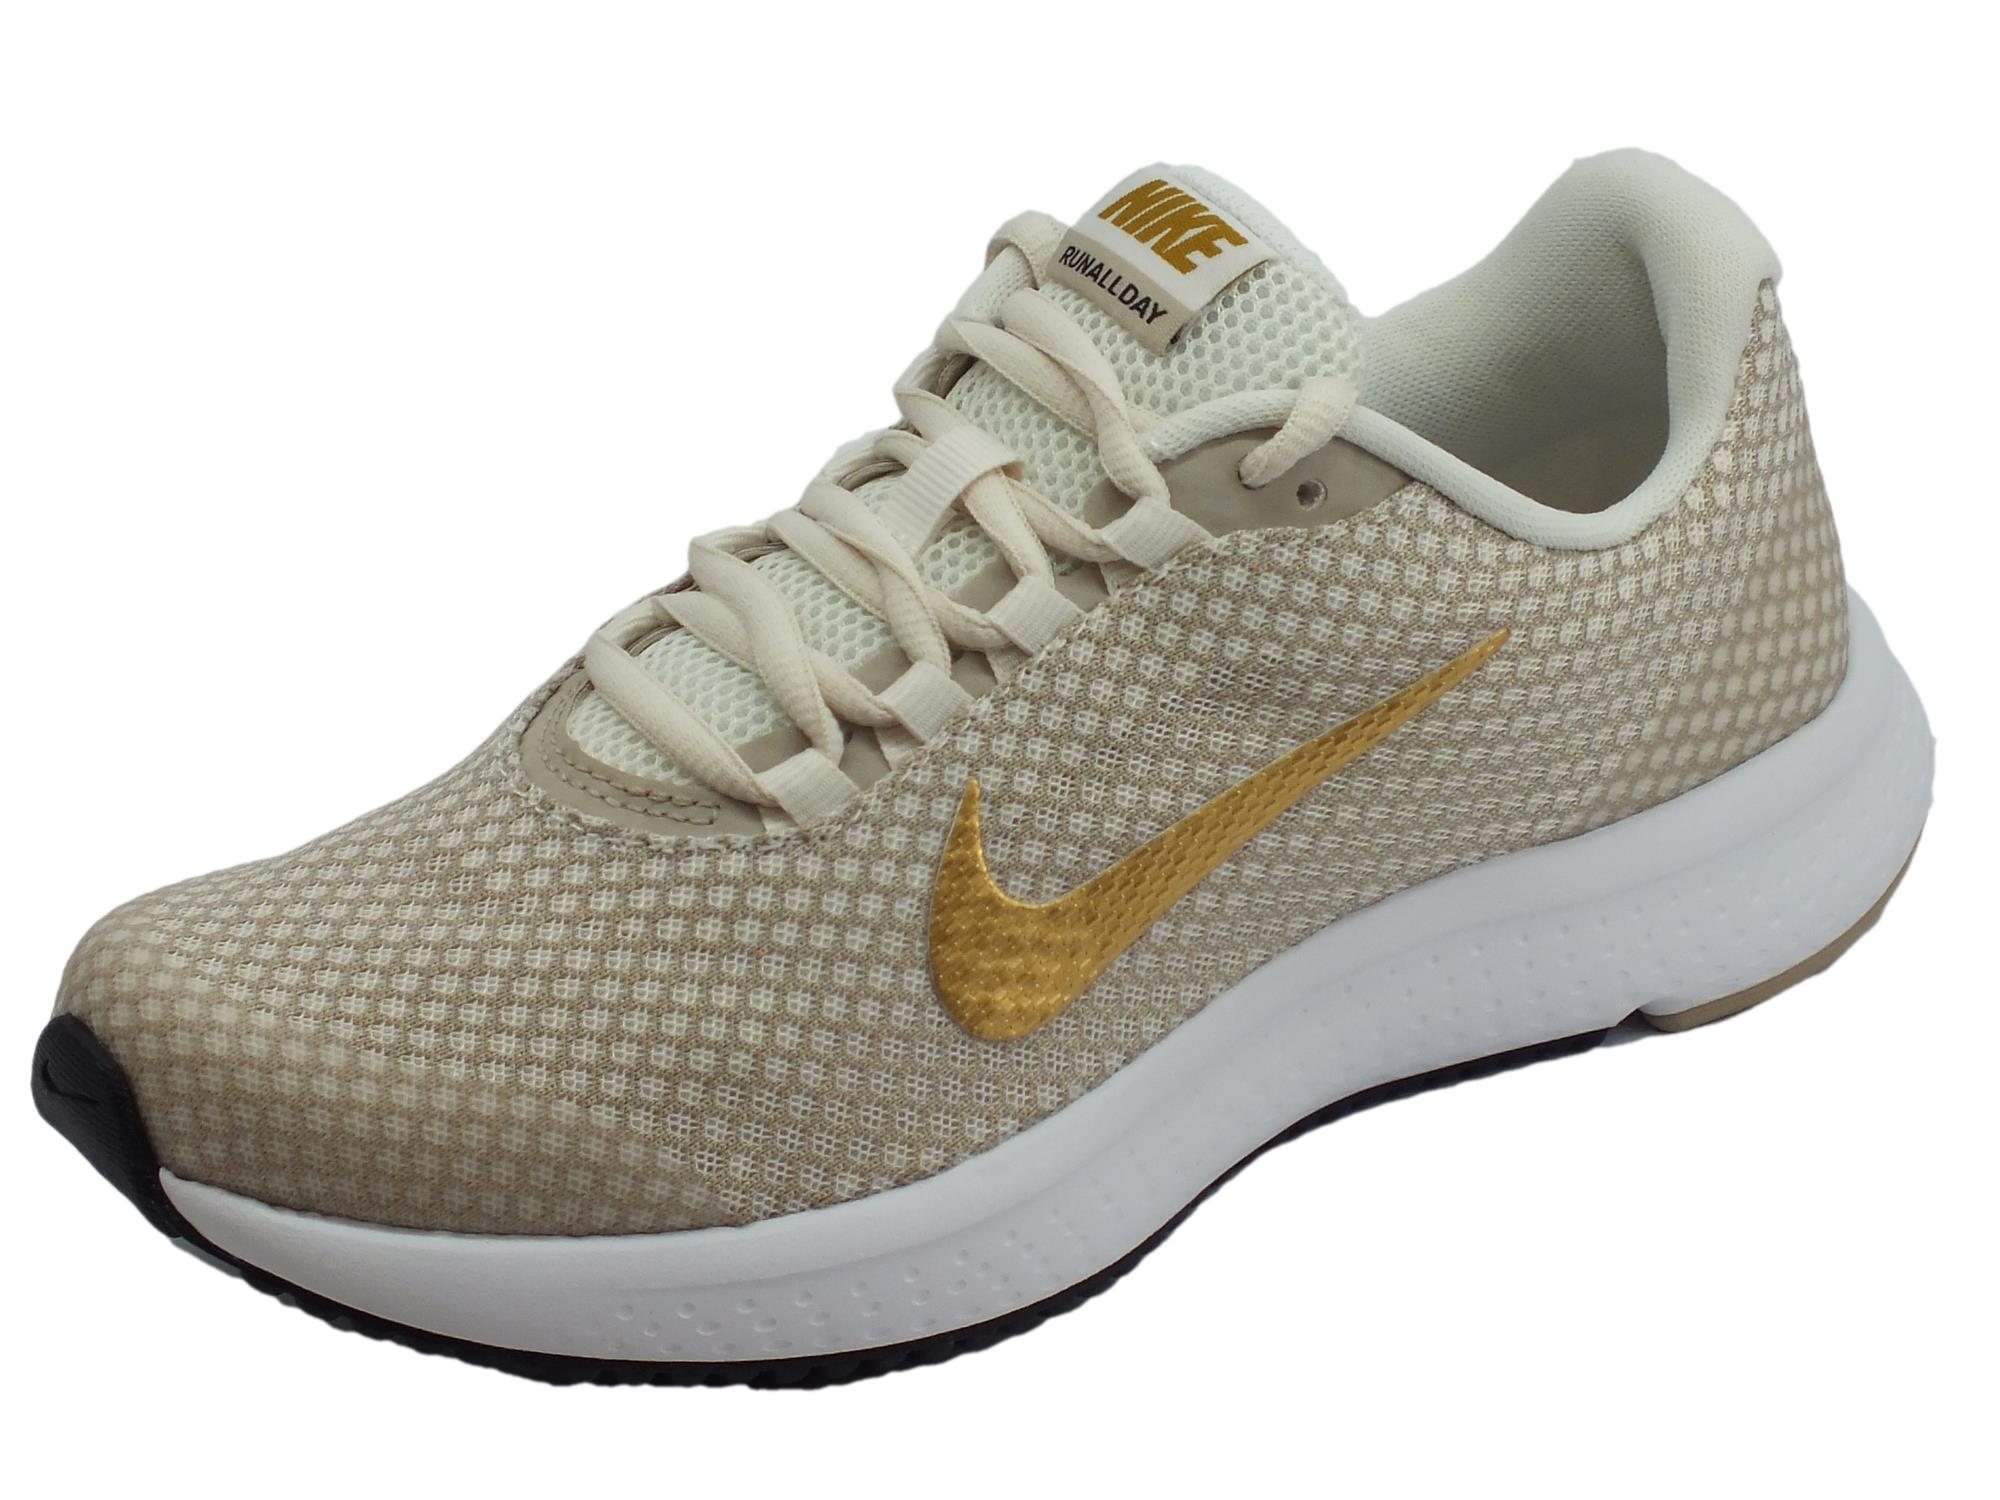 promo code aa7c7 32185 Scarpe sportive Nike Run All Day per donna in tessuto beige e metallico